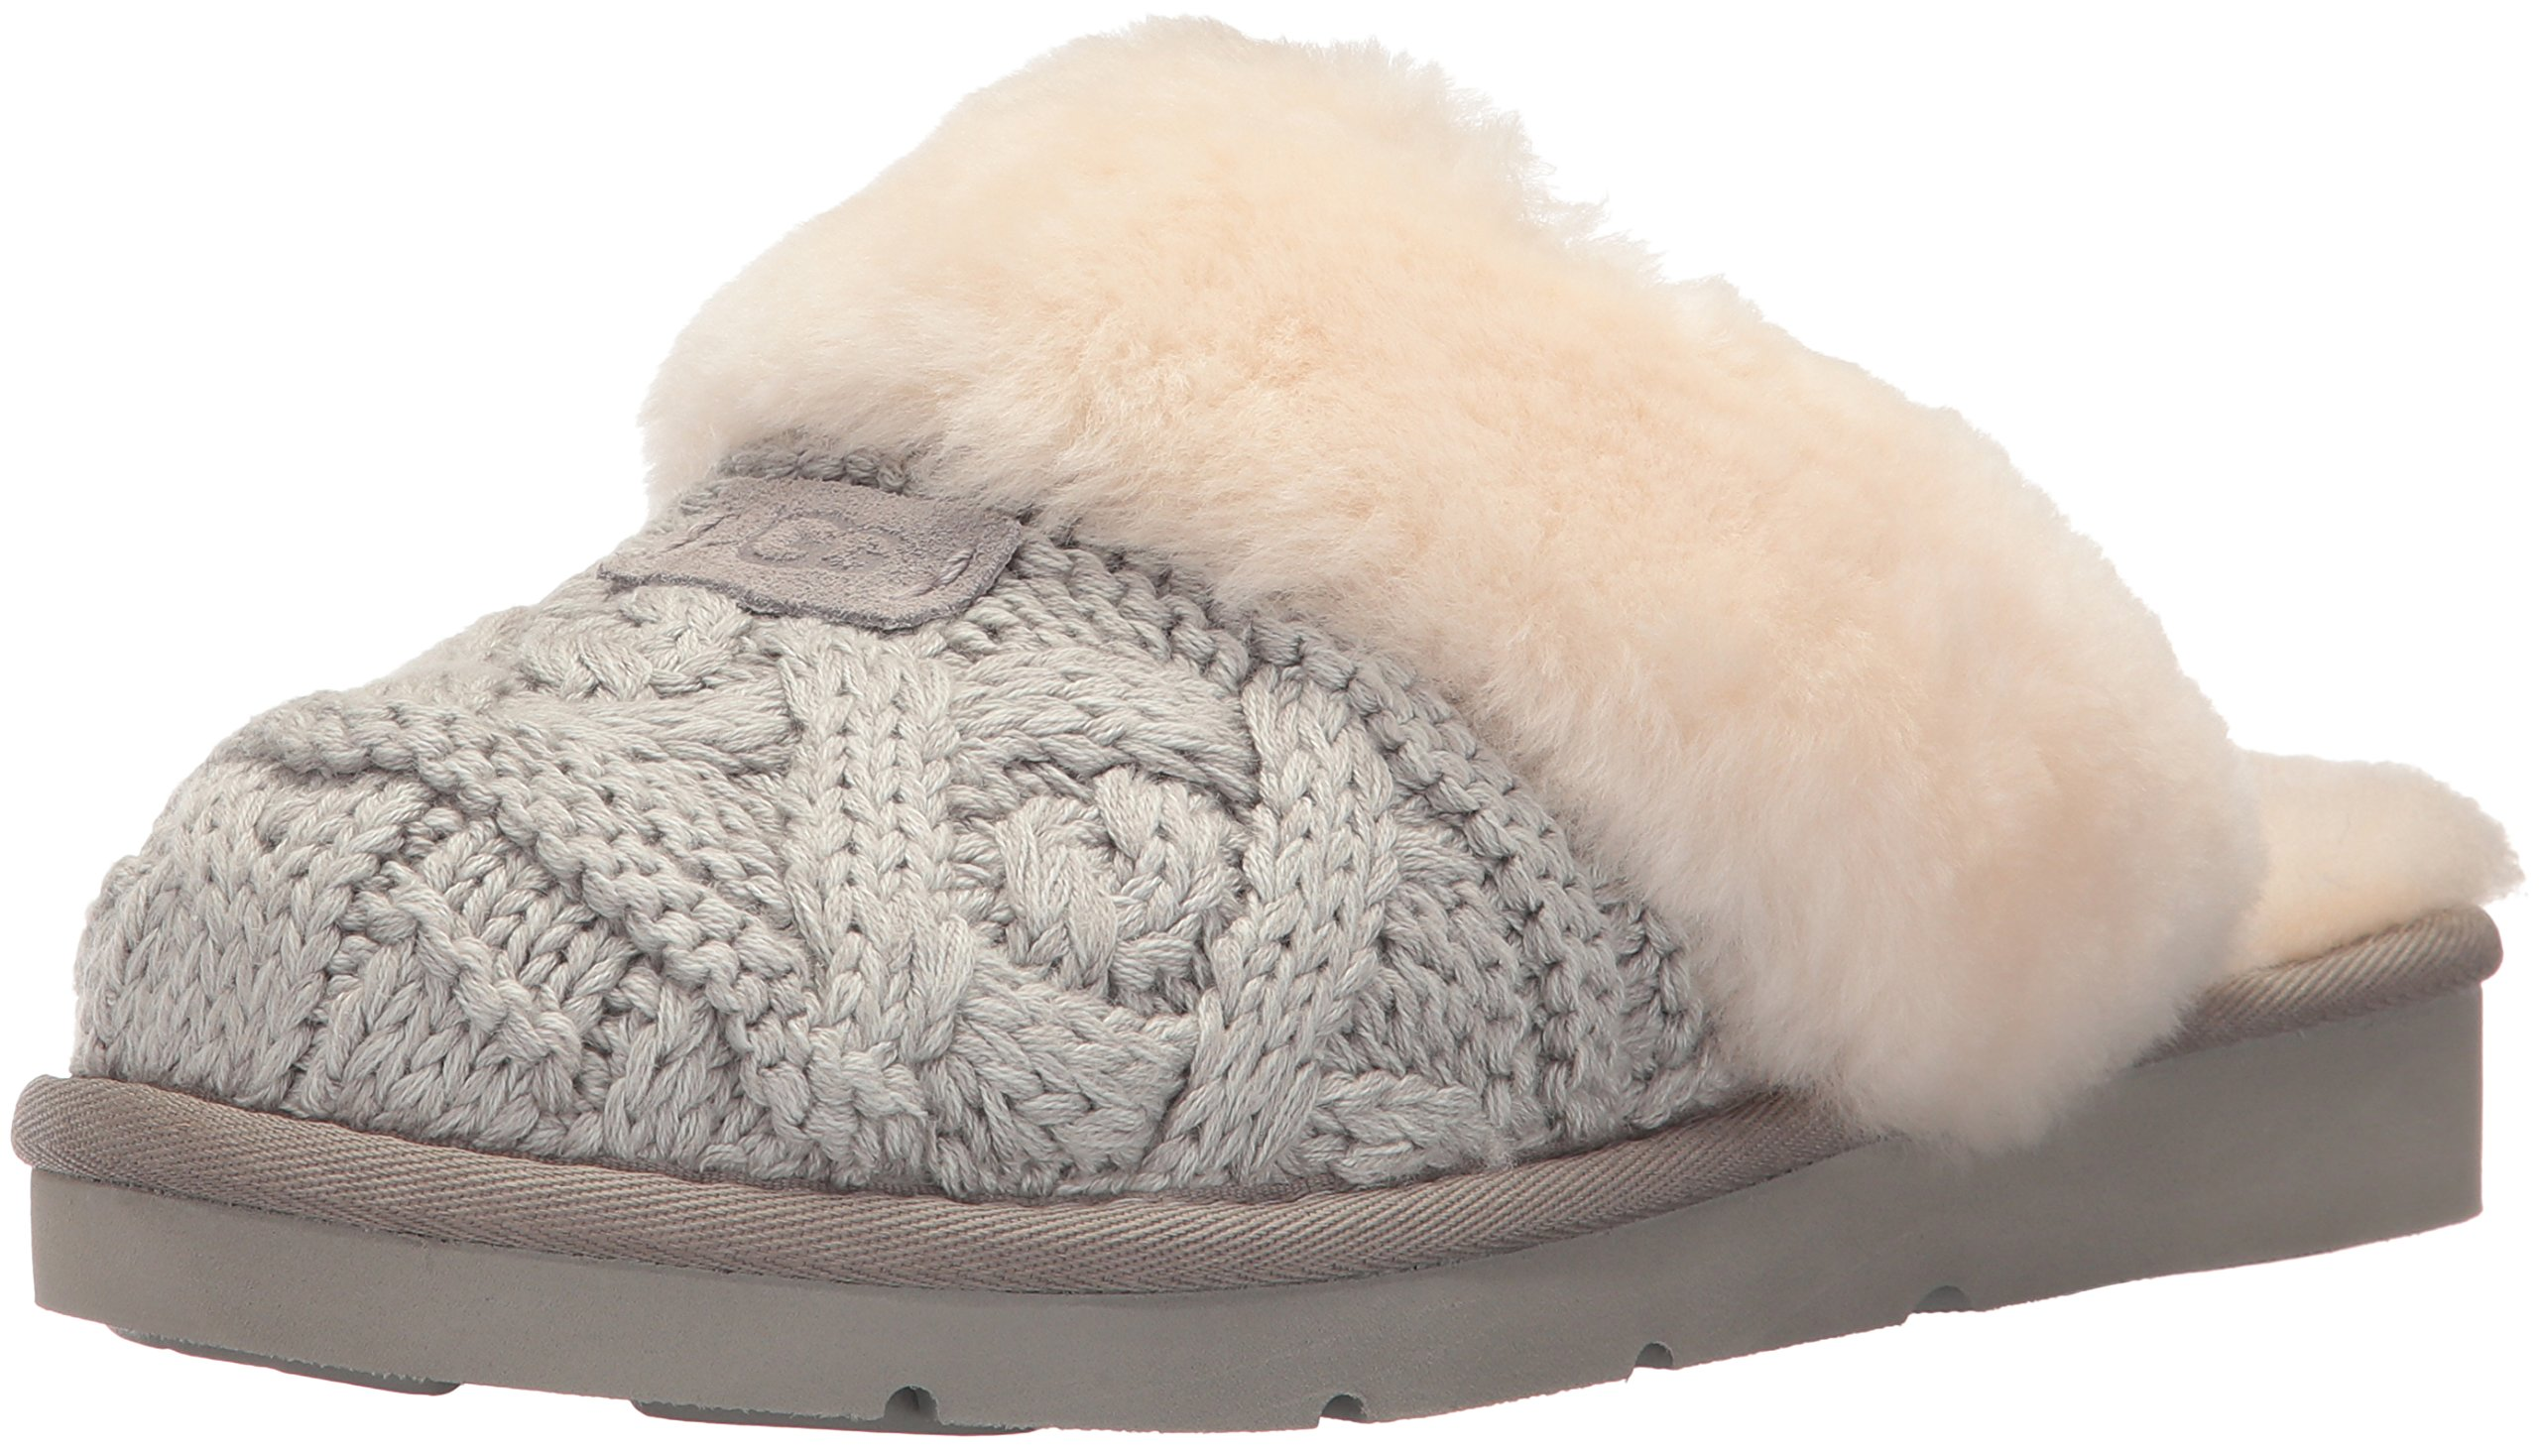 UGG Women's Cozy Cable Ankle Bootie, Seal, 9 M US